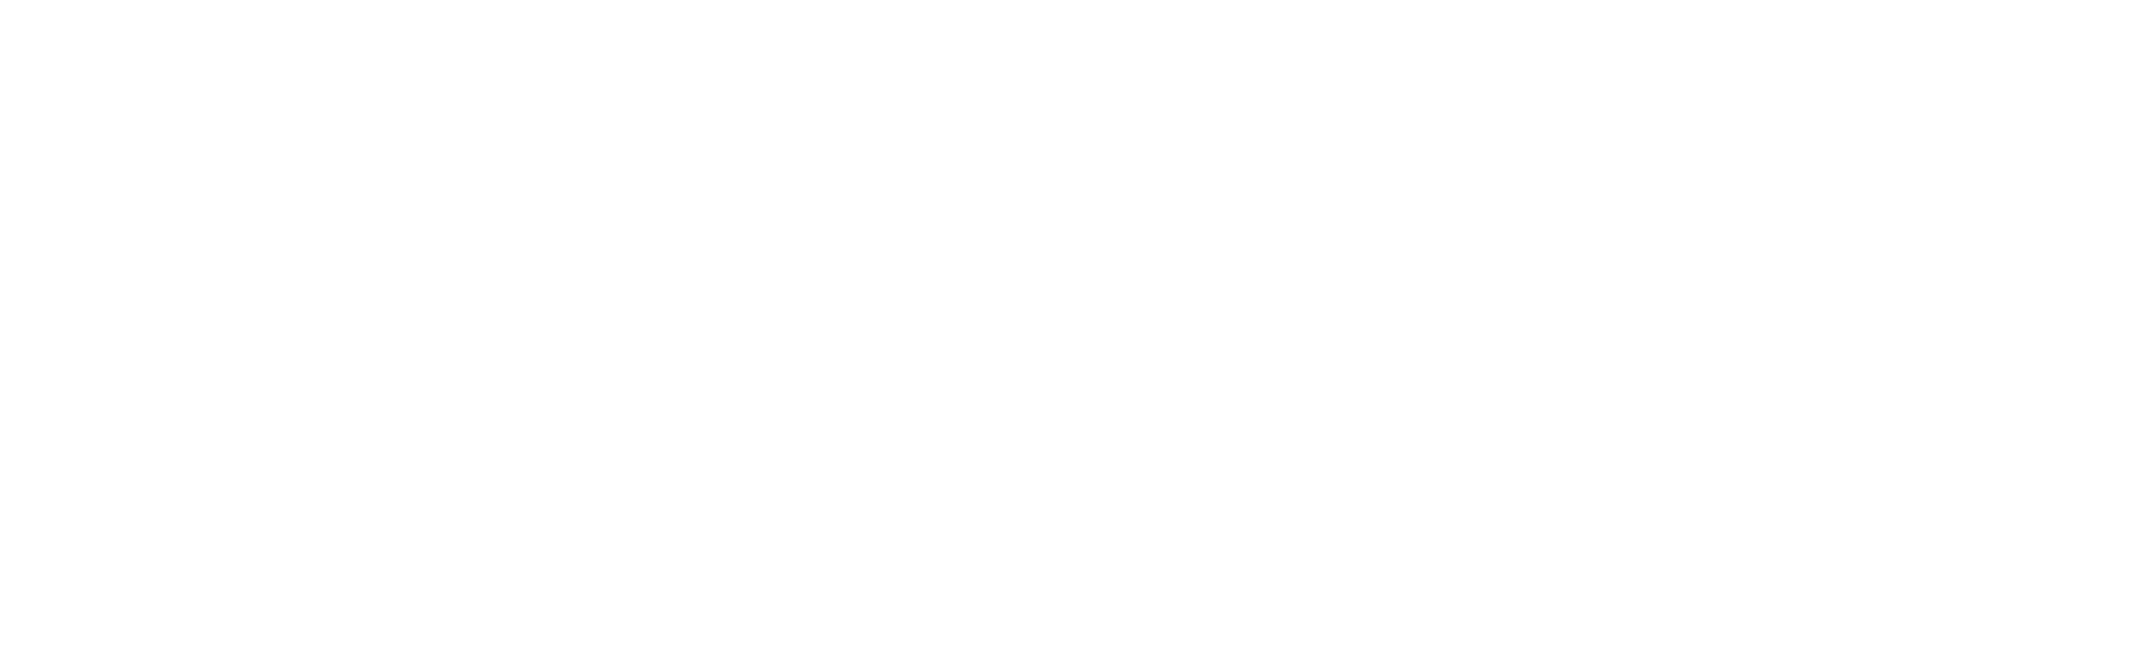 Webshoptalk